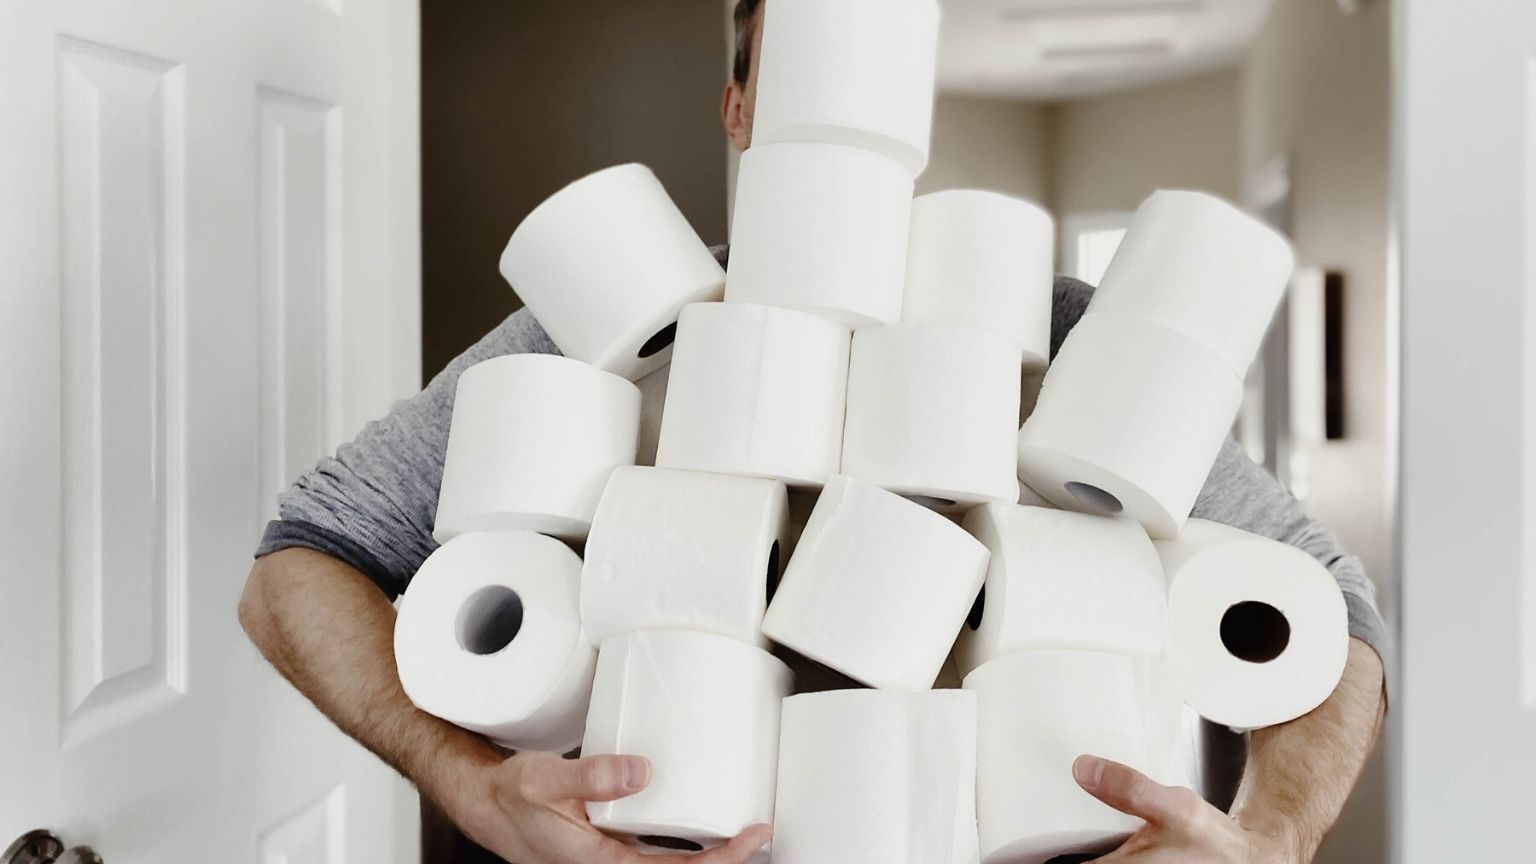 Man holding a pile of toilet paper rolls